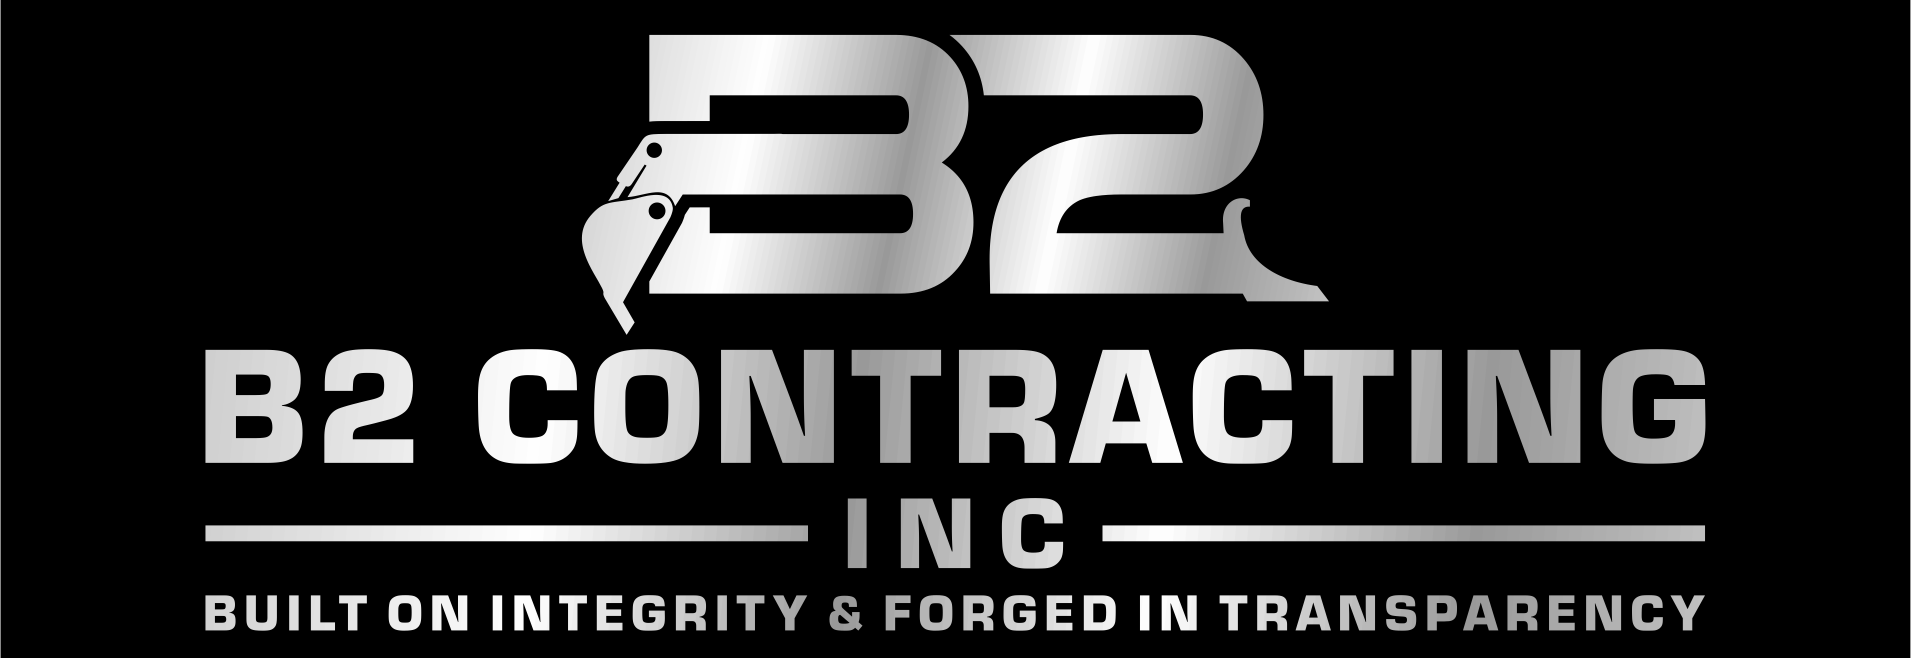 B2 Contracting